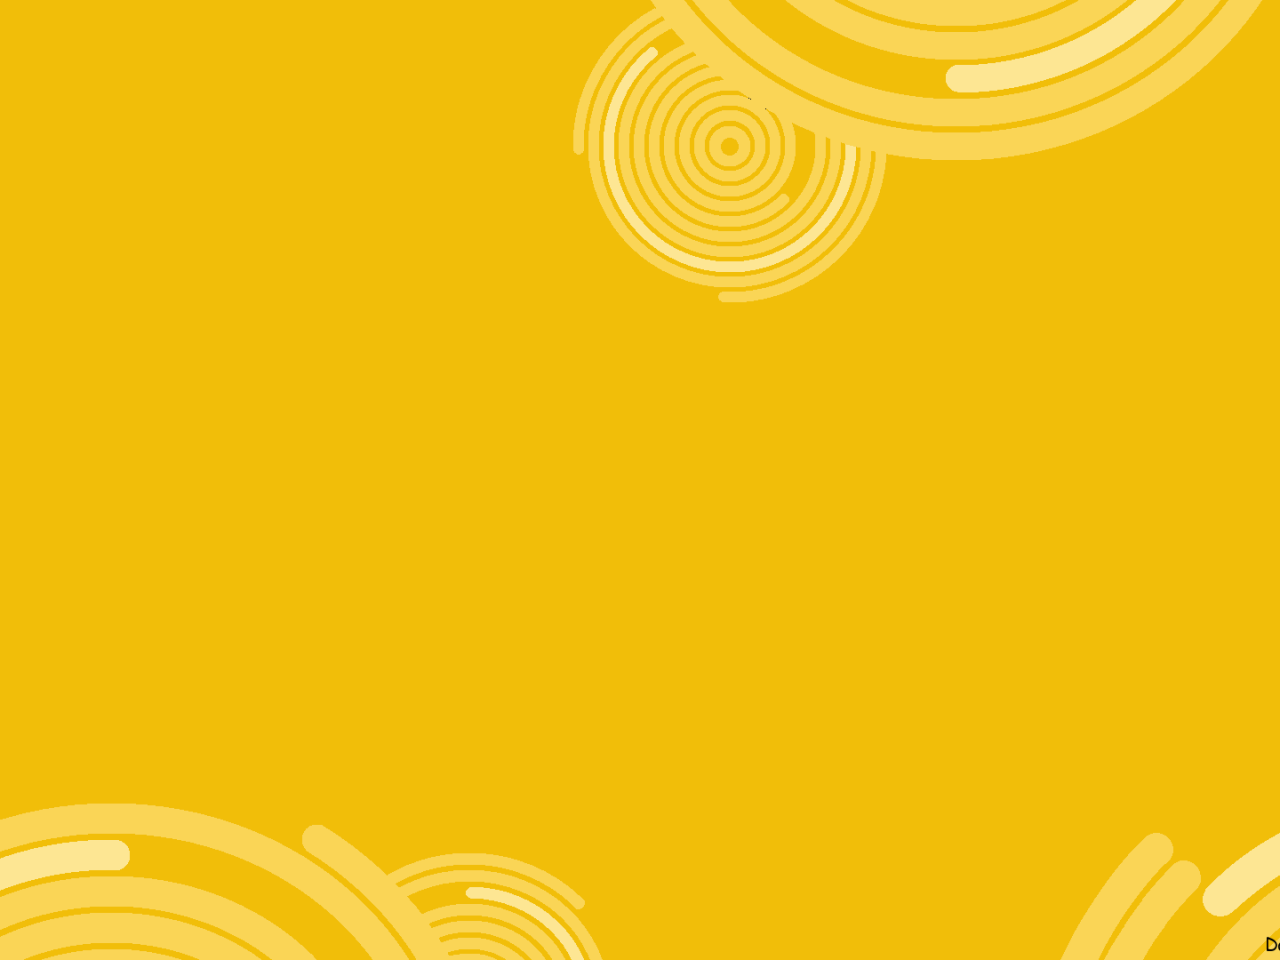 The Smiths Wallpaper Iphone Circles Of Yellow Hd Wallpapers